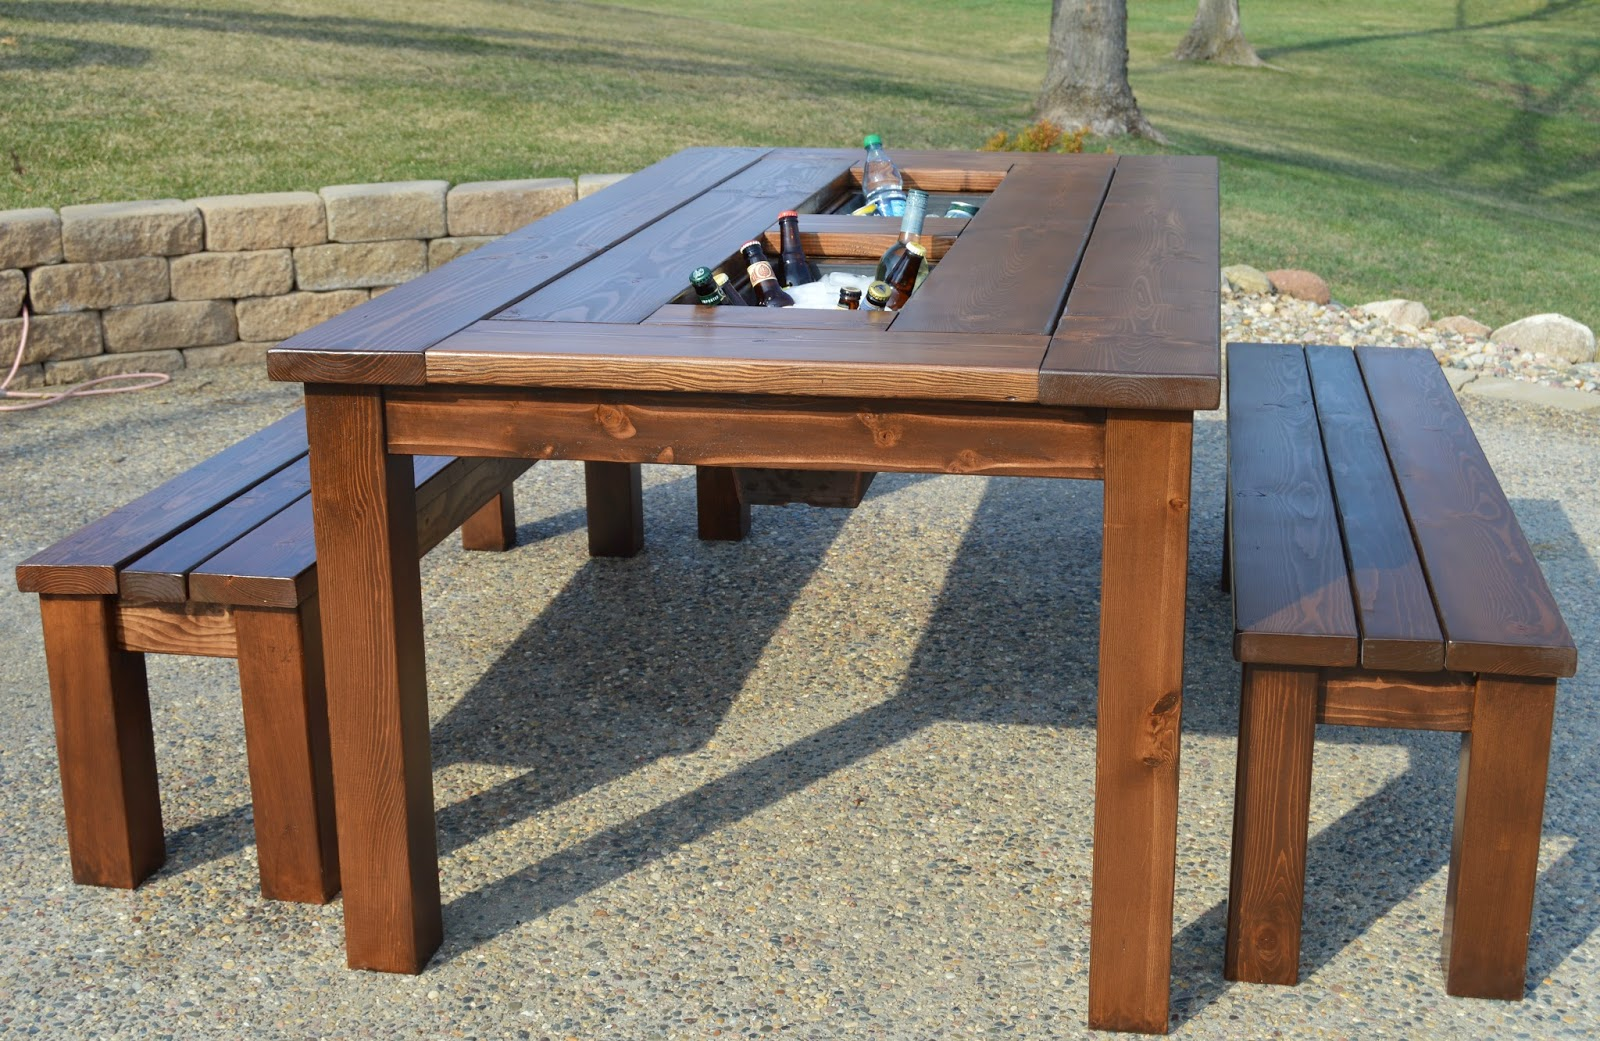 Captivating Patio Party Table With Built In Beer/Wine Ice Coolers